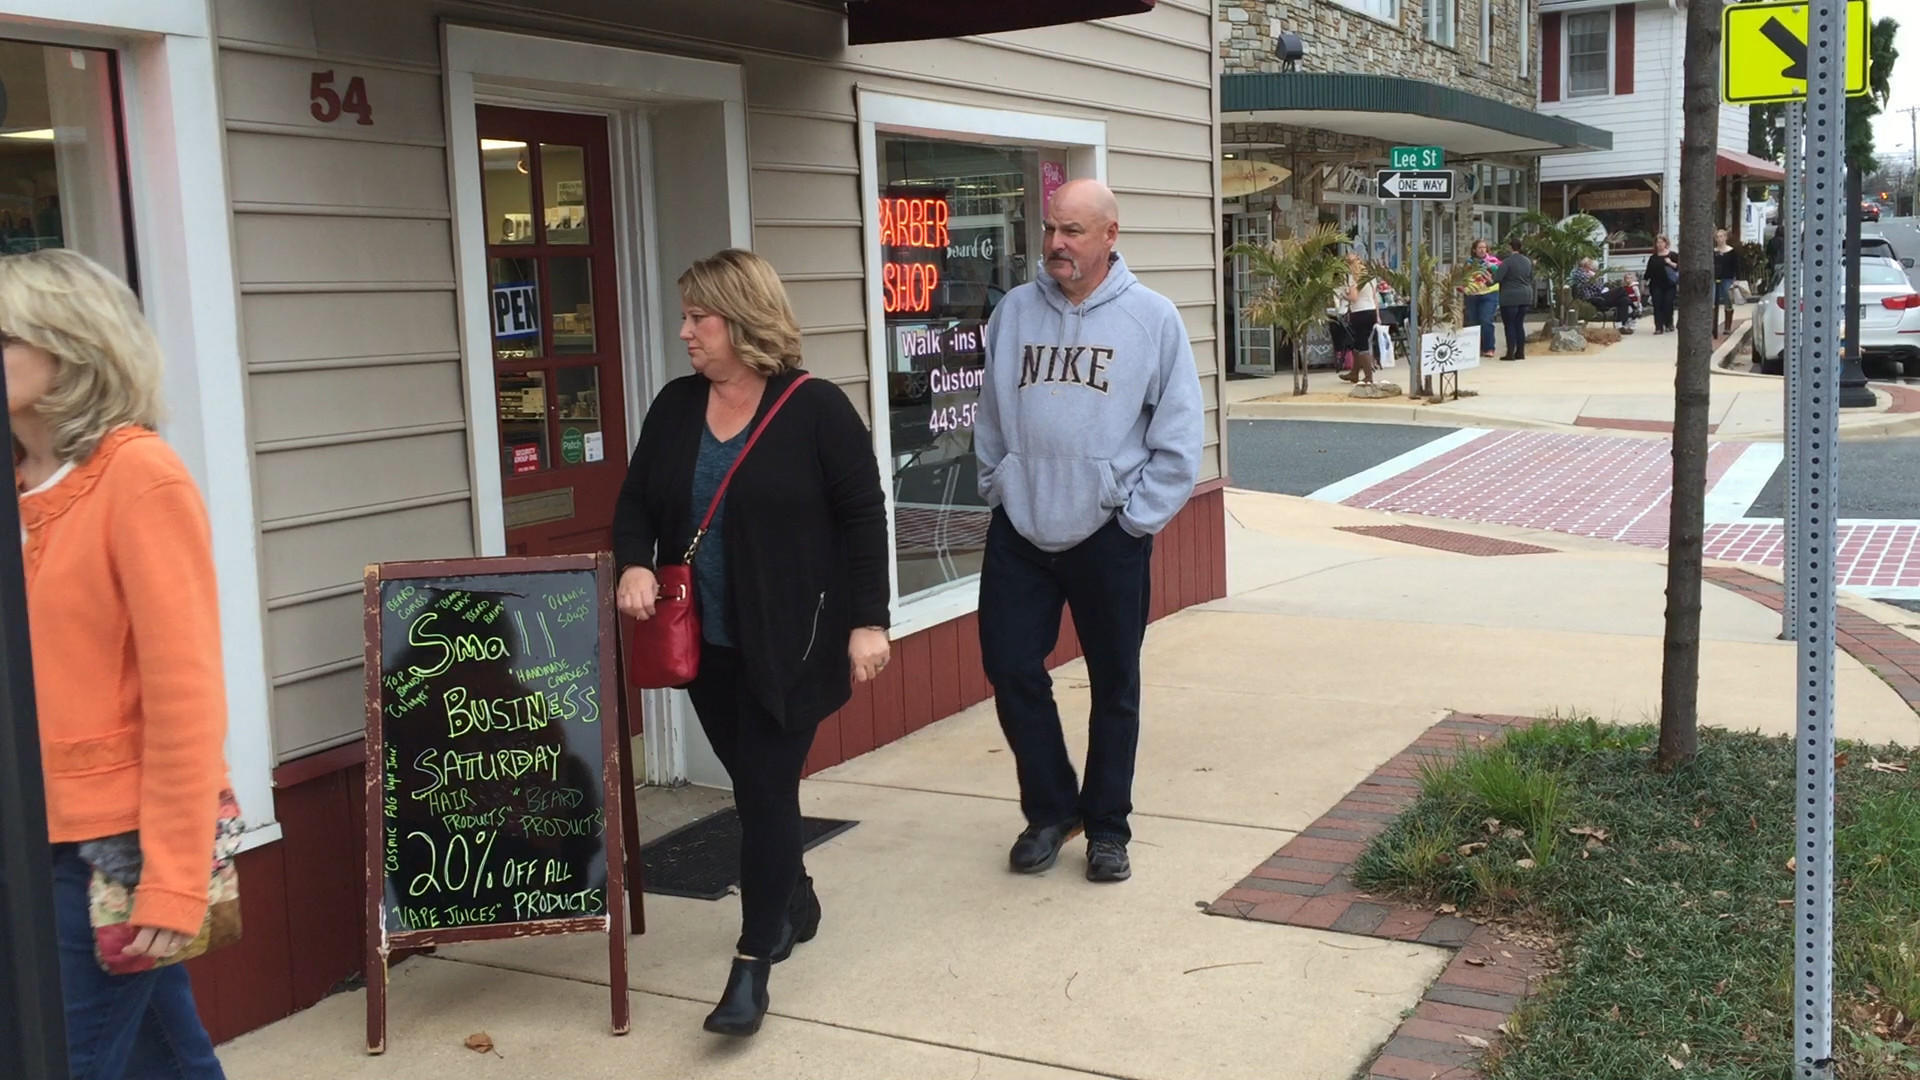 Consumers shop small on Saturday after Thanksgiving